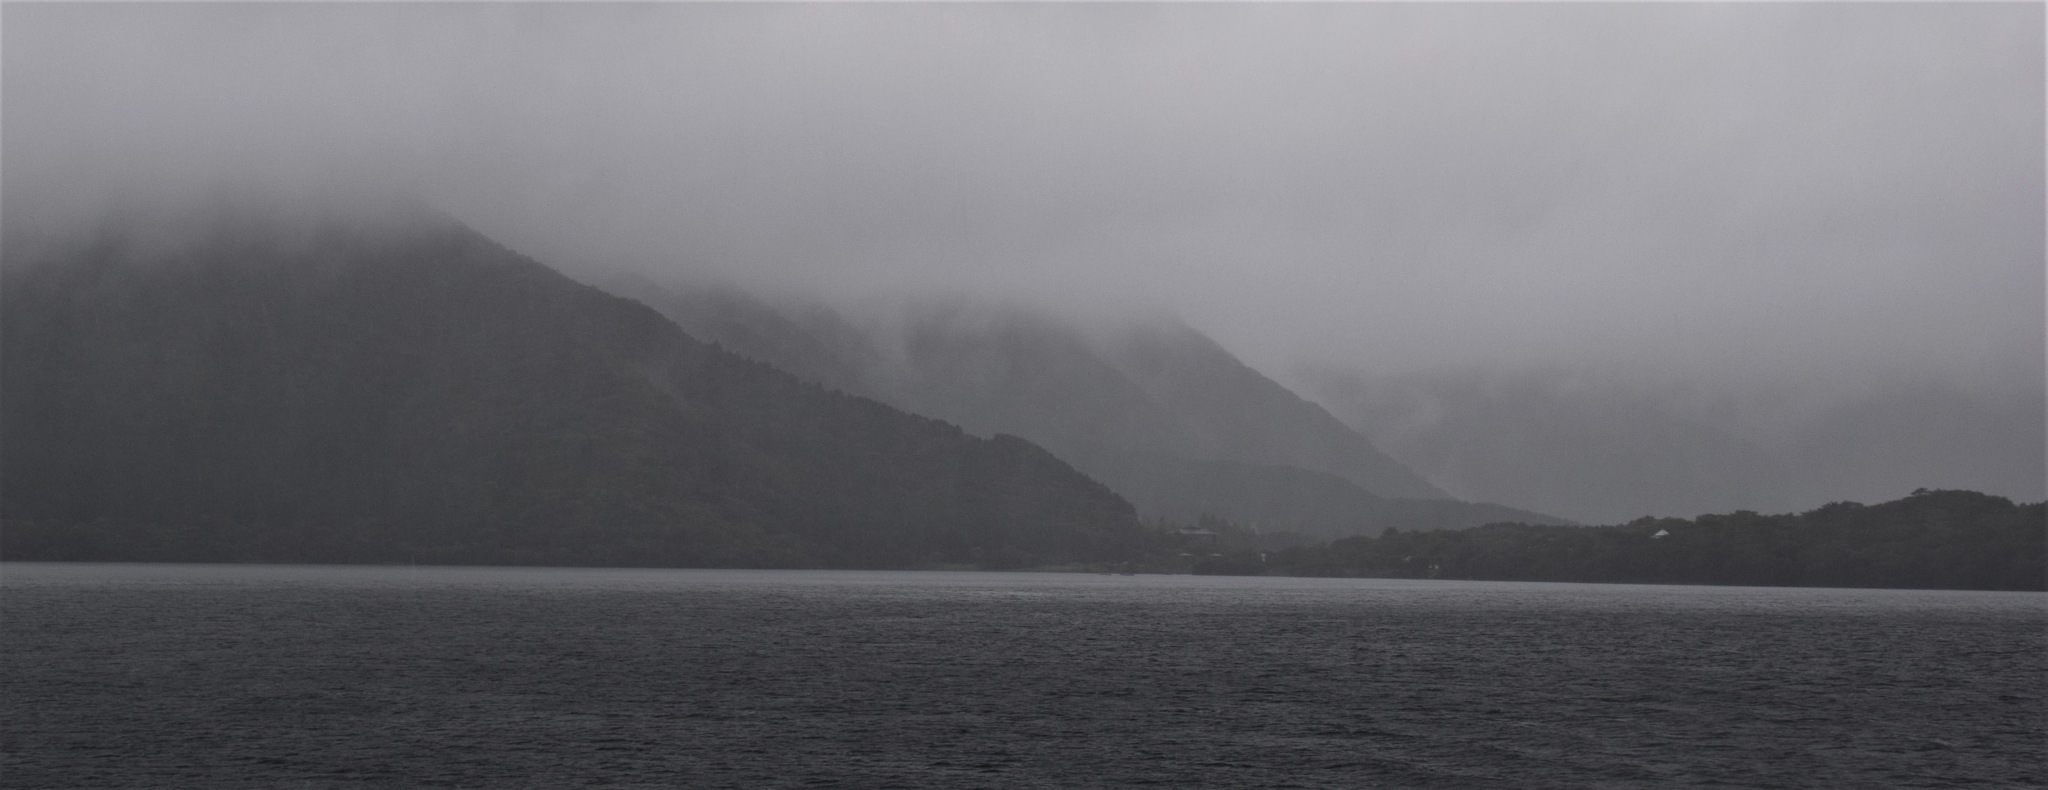 Lake Ashi on Rainy cloudy windy day. Kanagawa Prefecture by Kishore Shetty